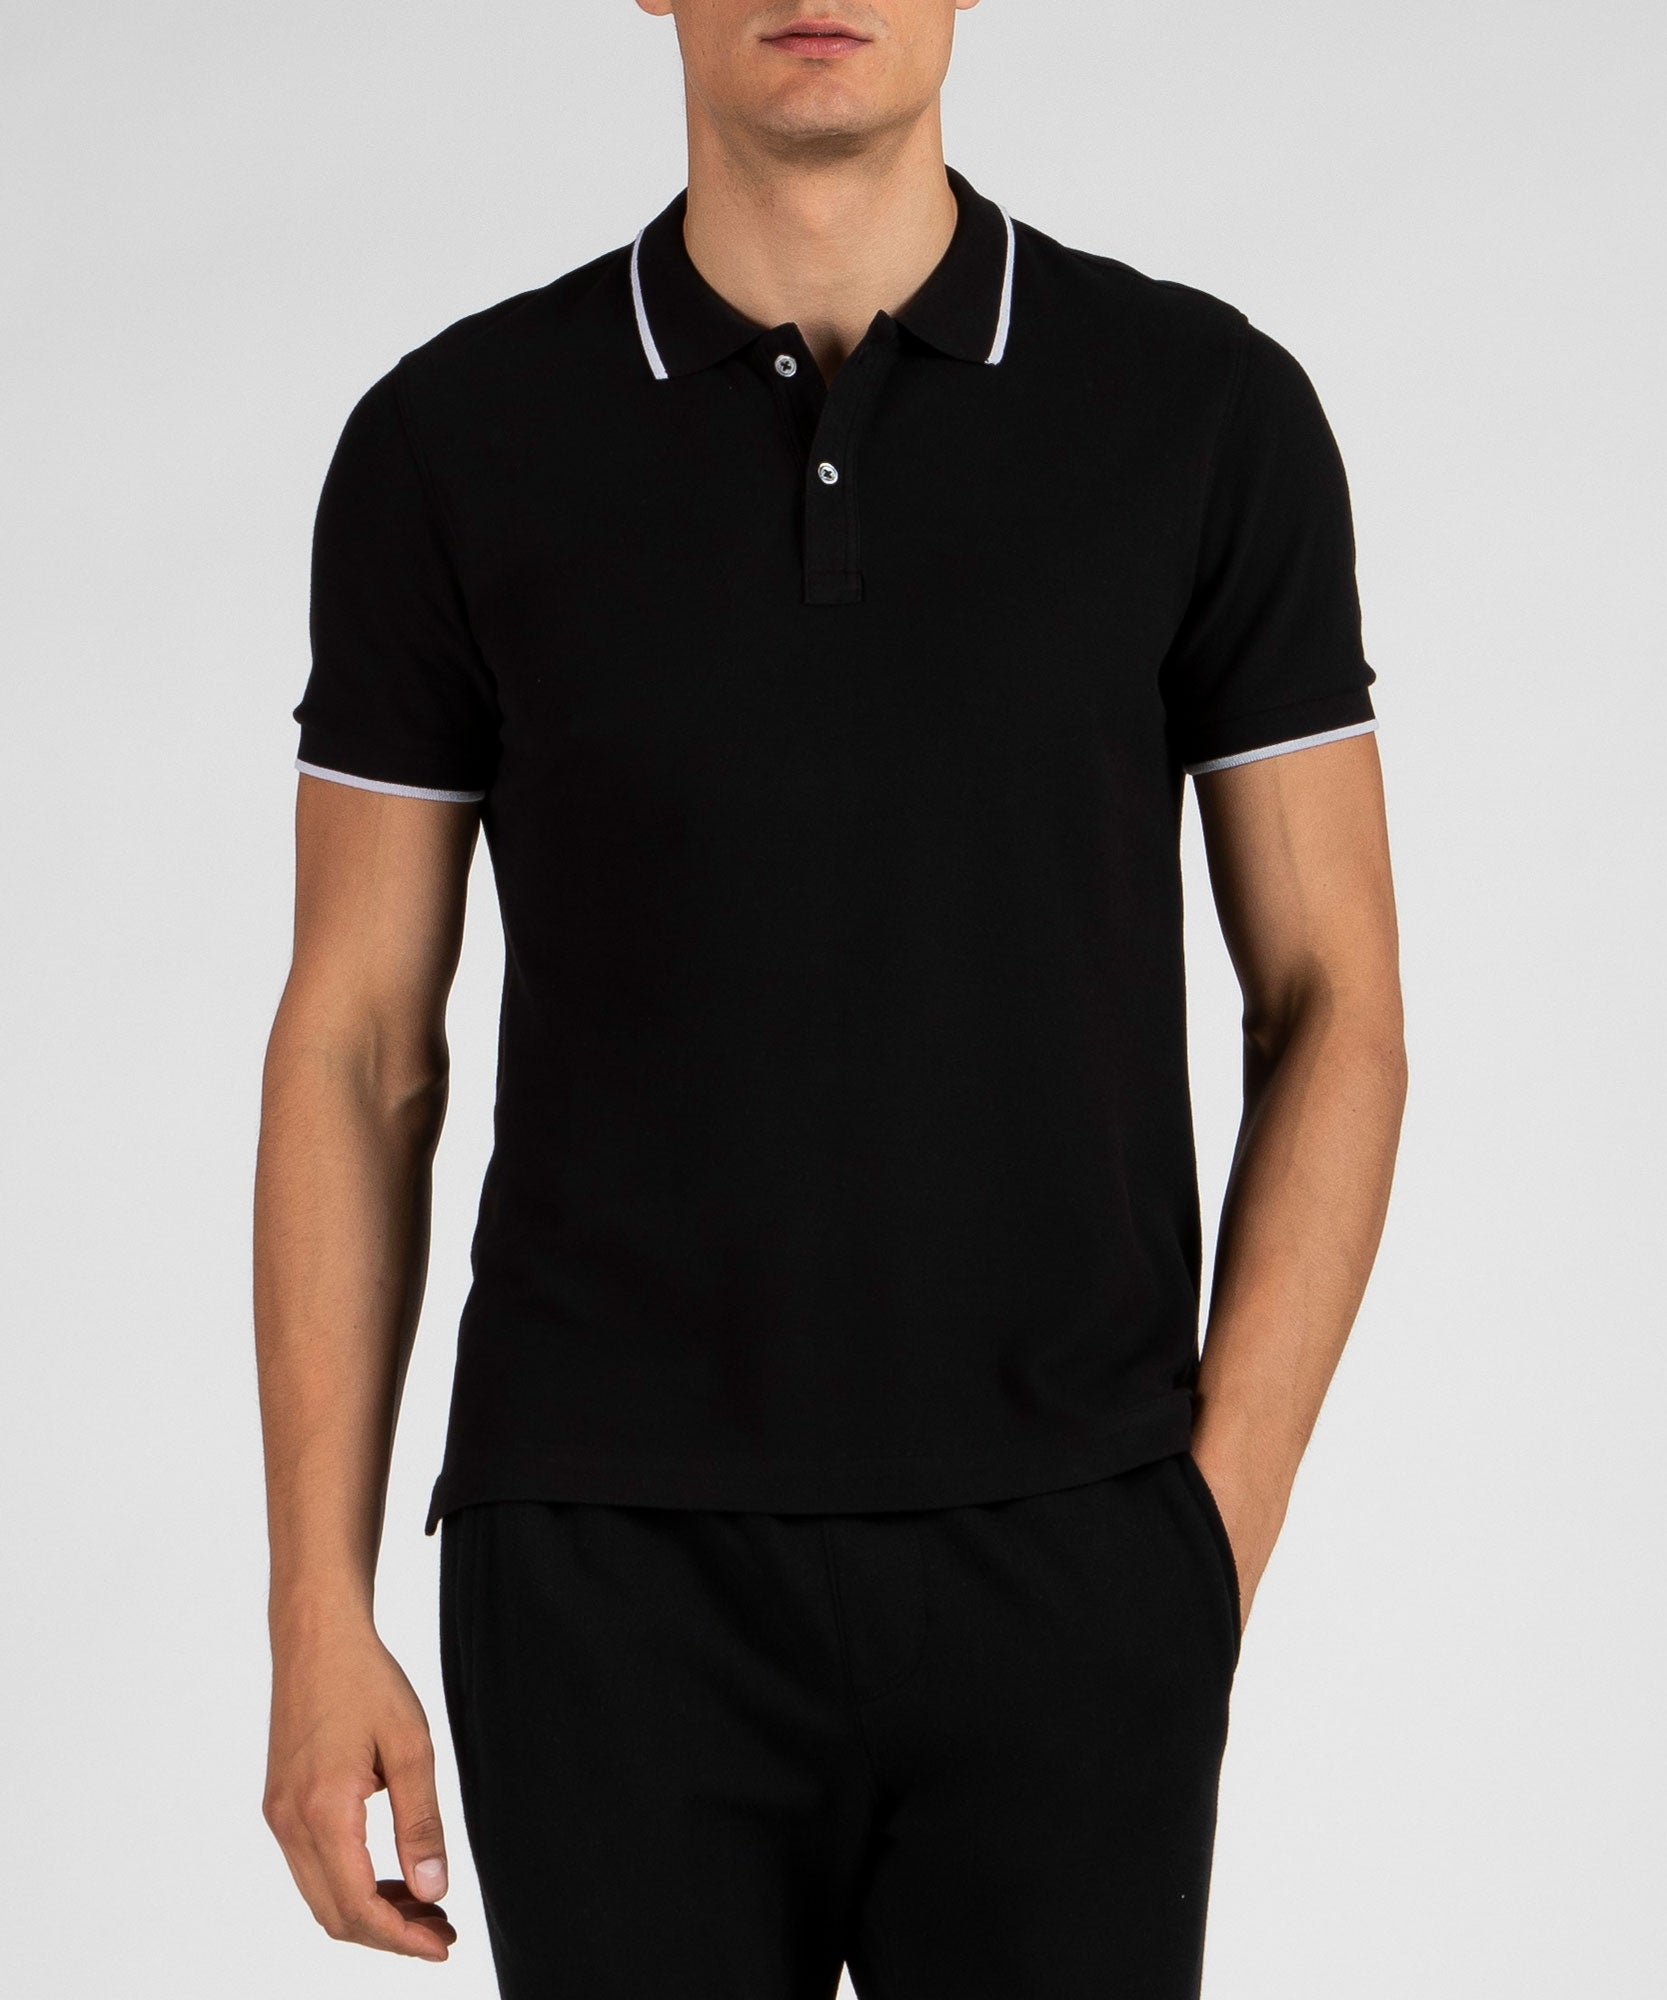 Black Tipped Pique Polo - Men's Polo Shirt by ATM Anthony Thomas Melillo